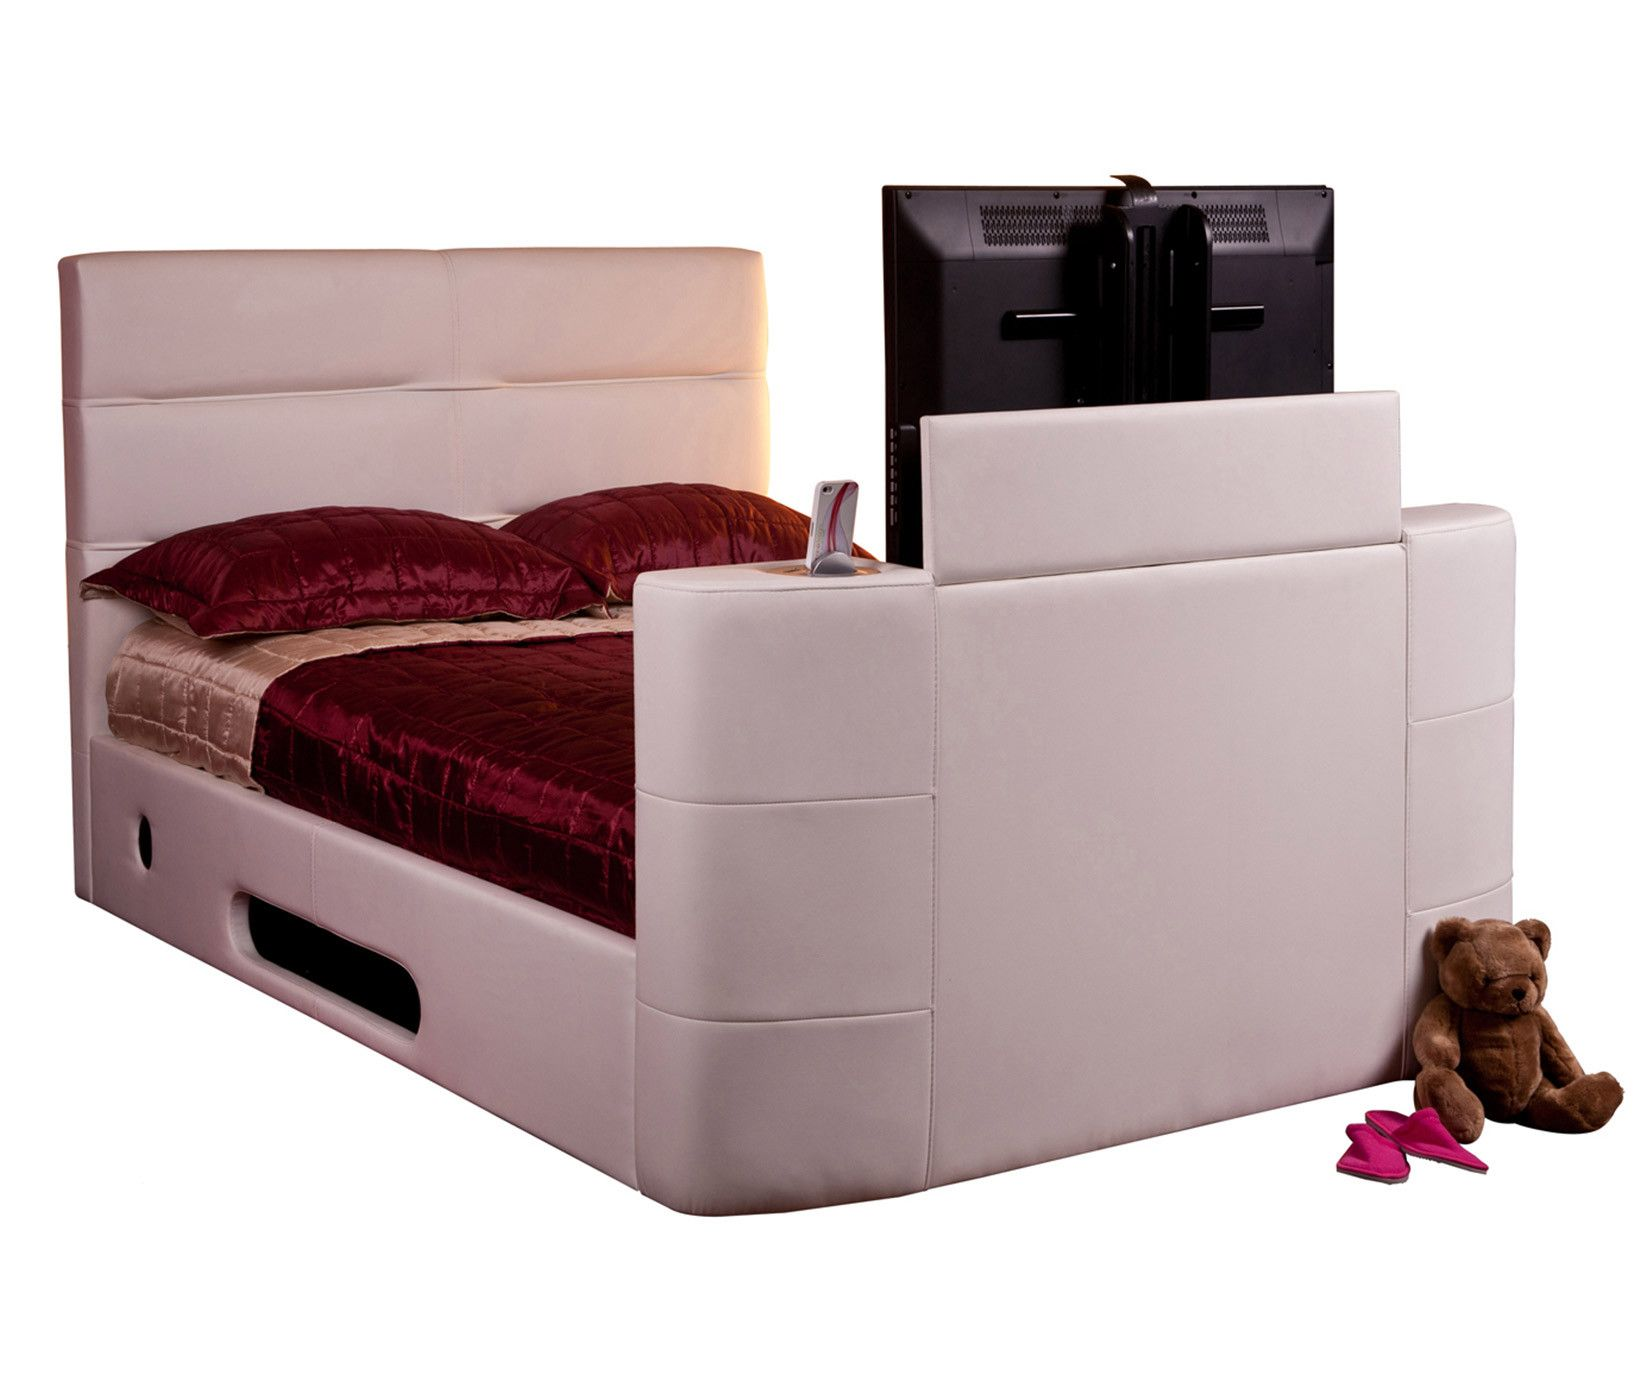 Faux Leather TV Beds Only on £594.99 | Beds Direct UK | Buy Now ...